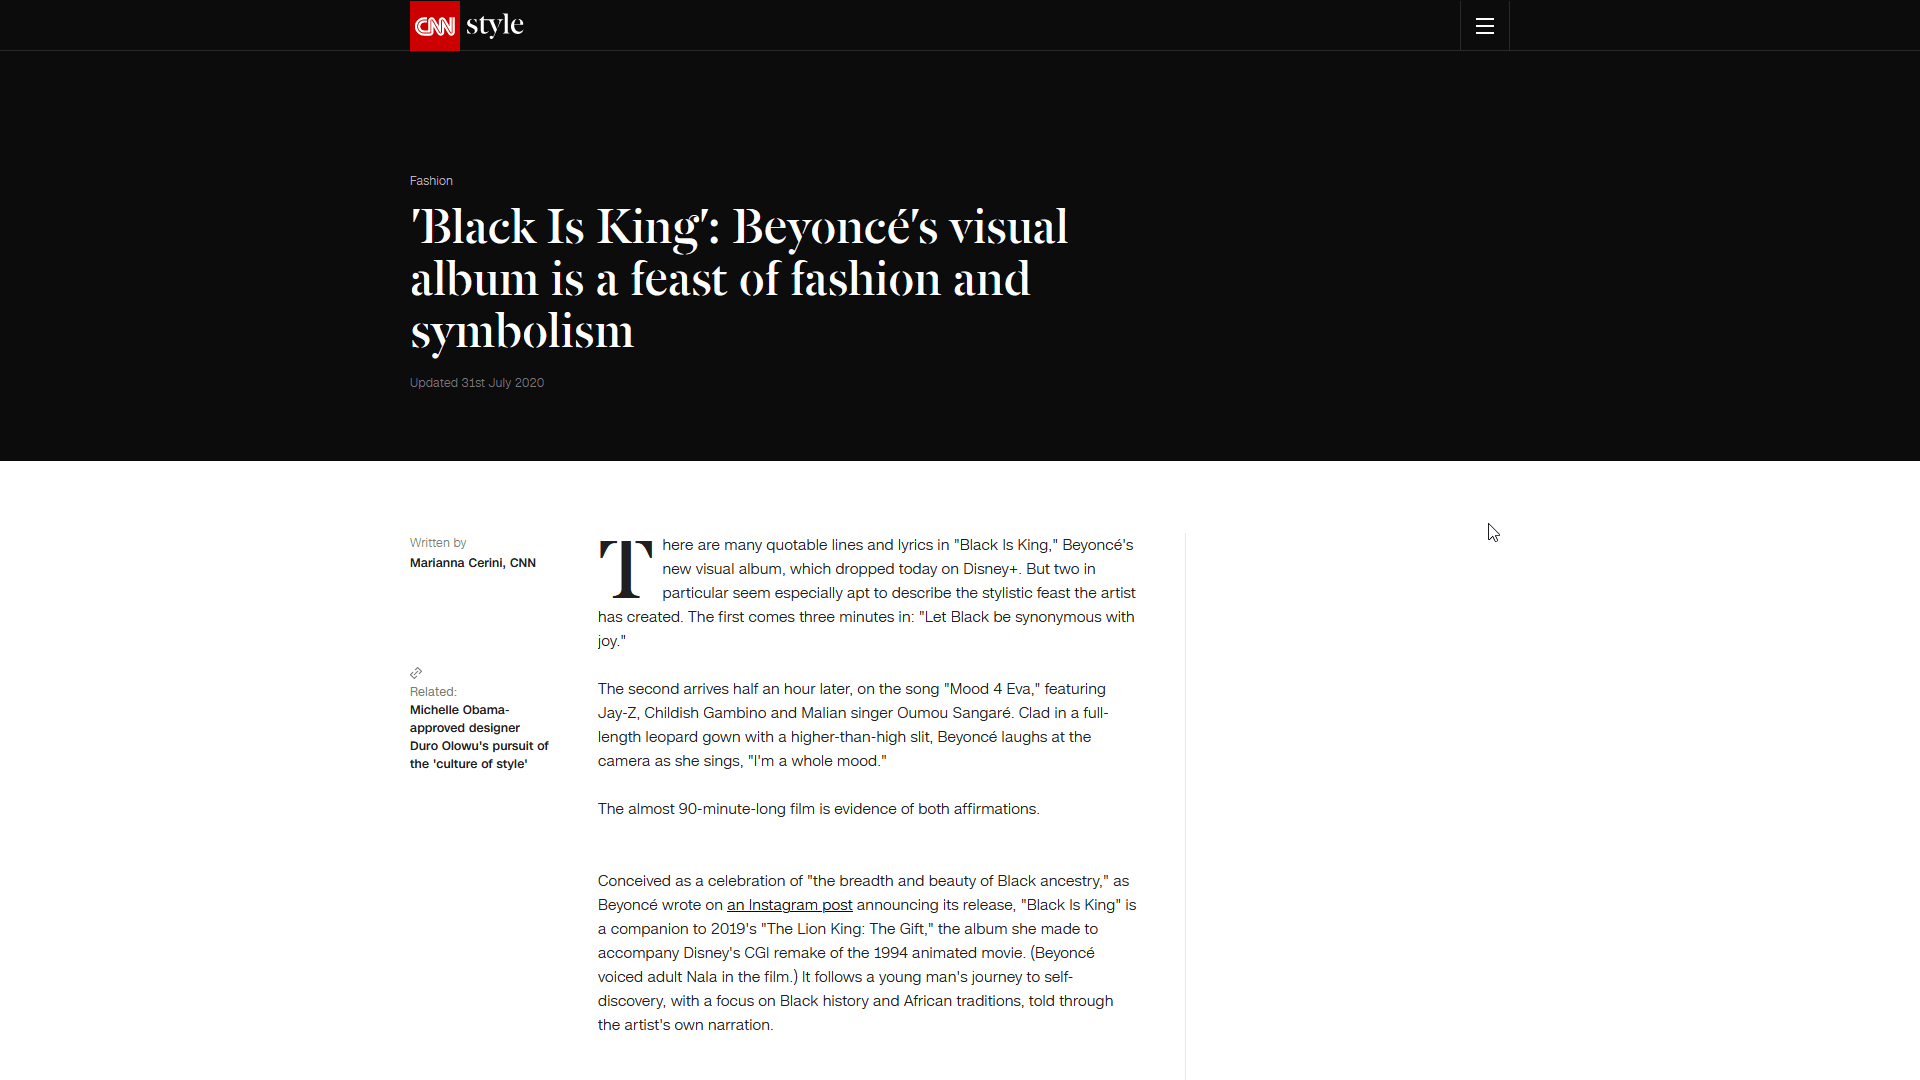 'Black Is King': Beyoncé's visual album is a feast of fashion and symbolism